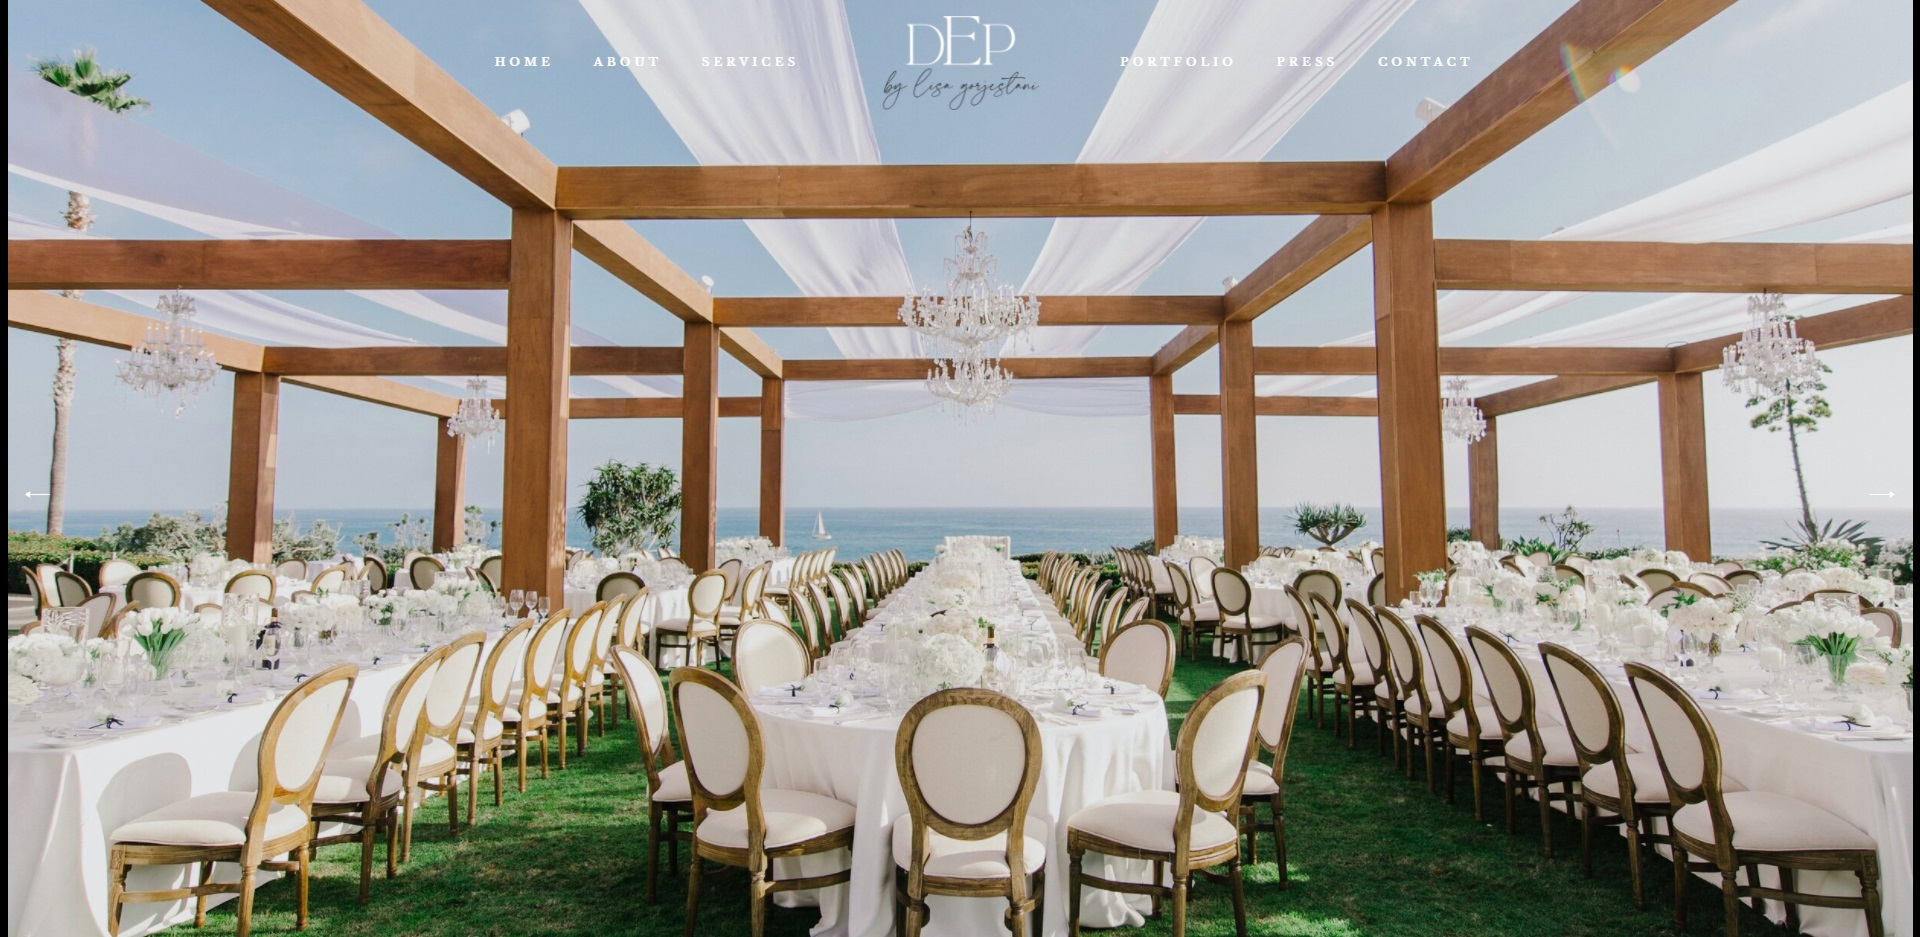 Los Angeles, CA Best Party Planners